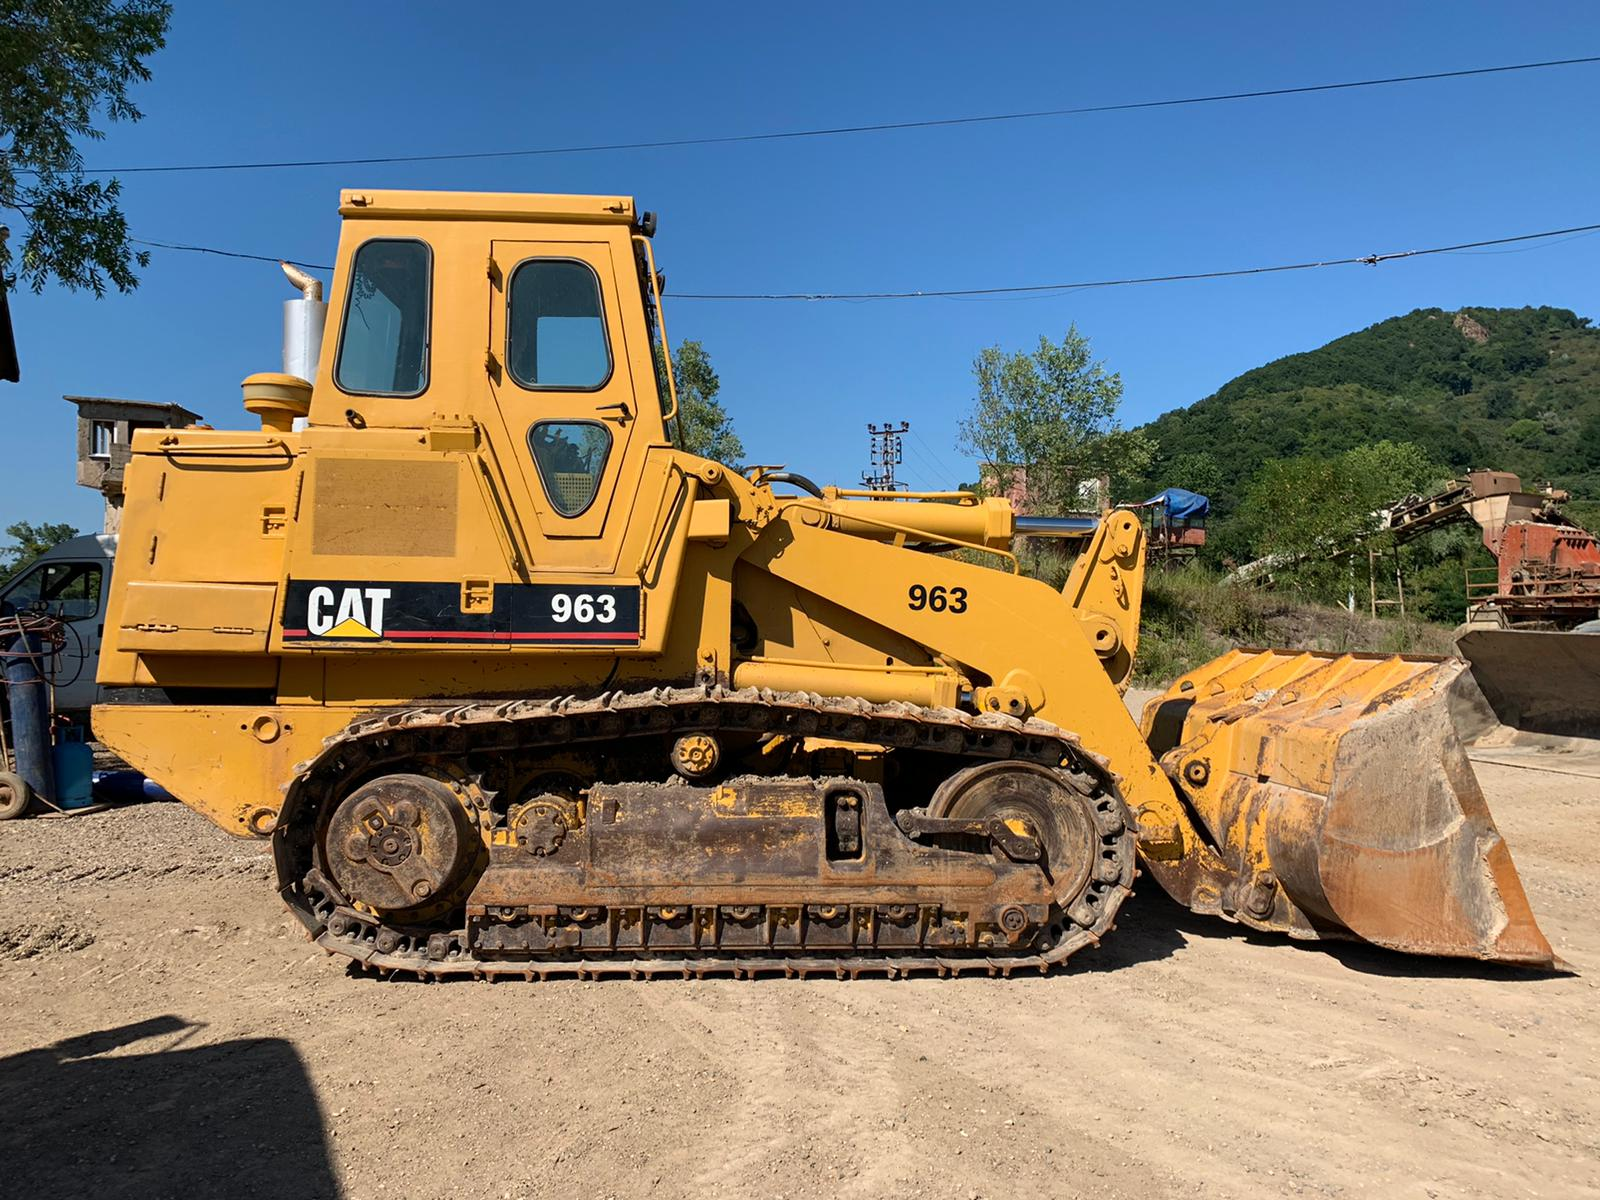 1986 MODEL CATERPILLAR 963 CRAWLER LOADER